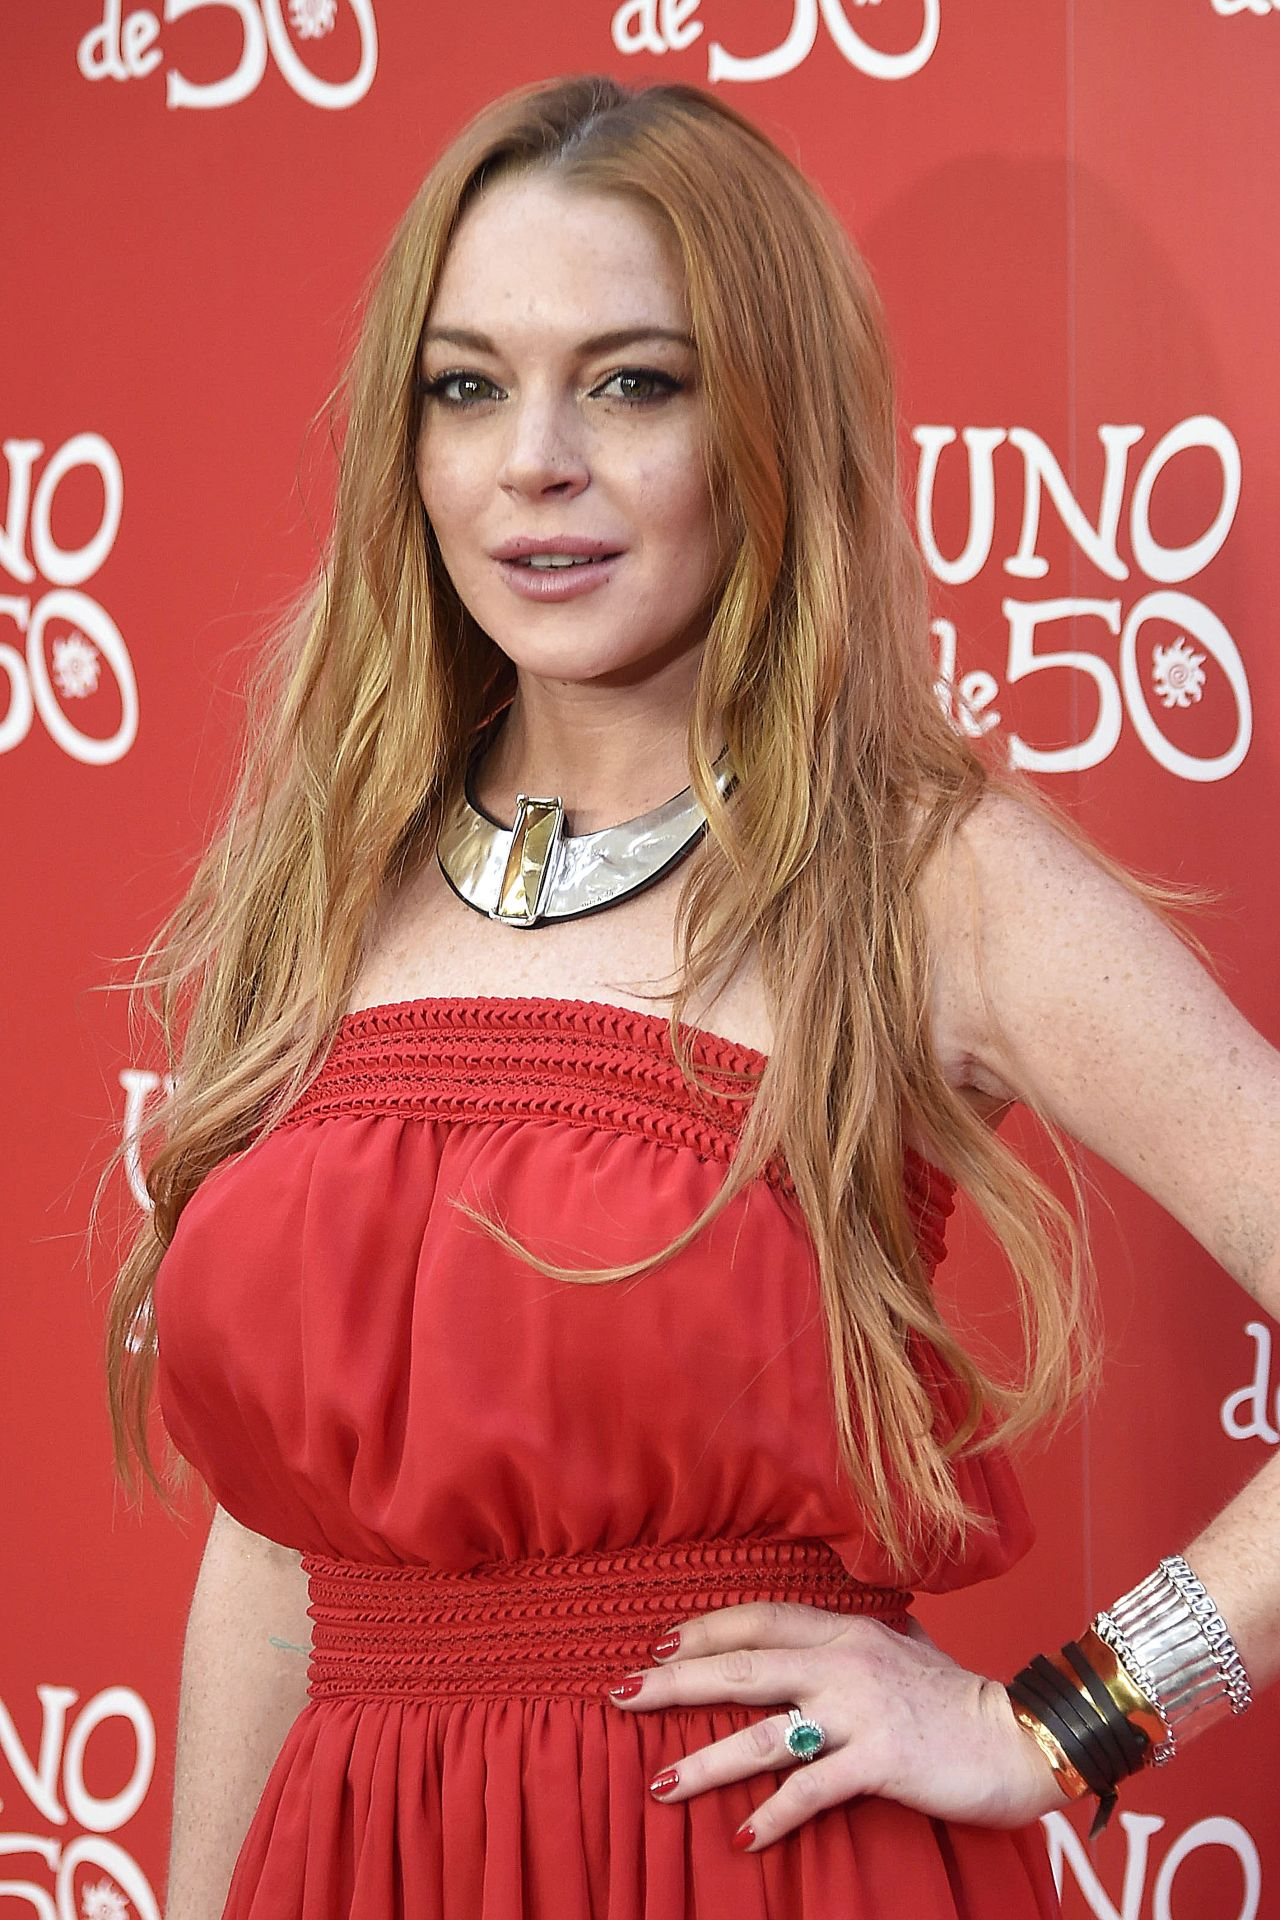 Lindsay Lohan Uno De 50 Jewelry Brand Photocall In